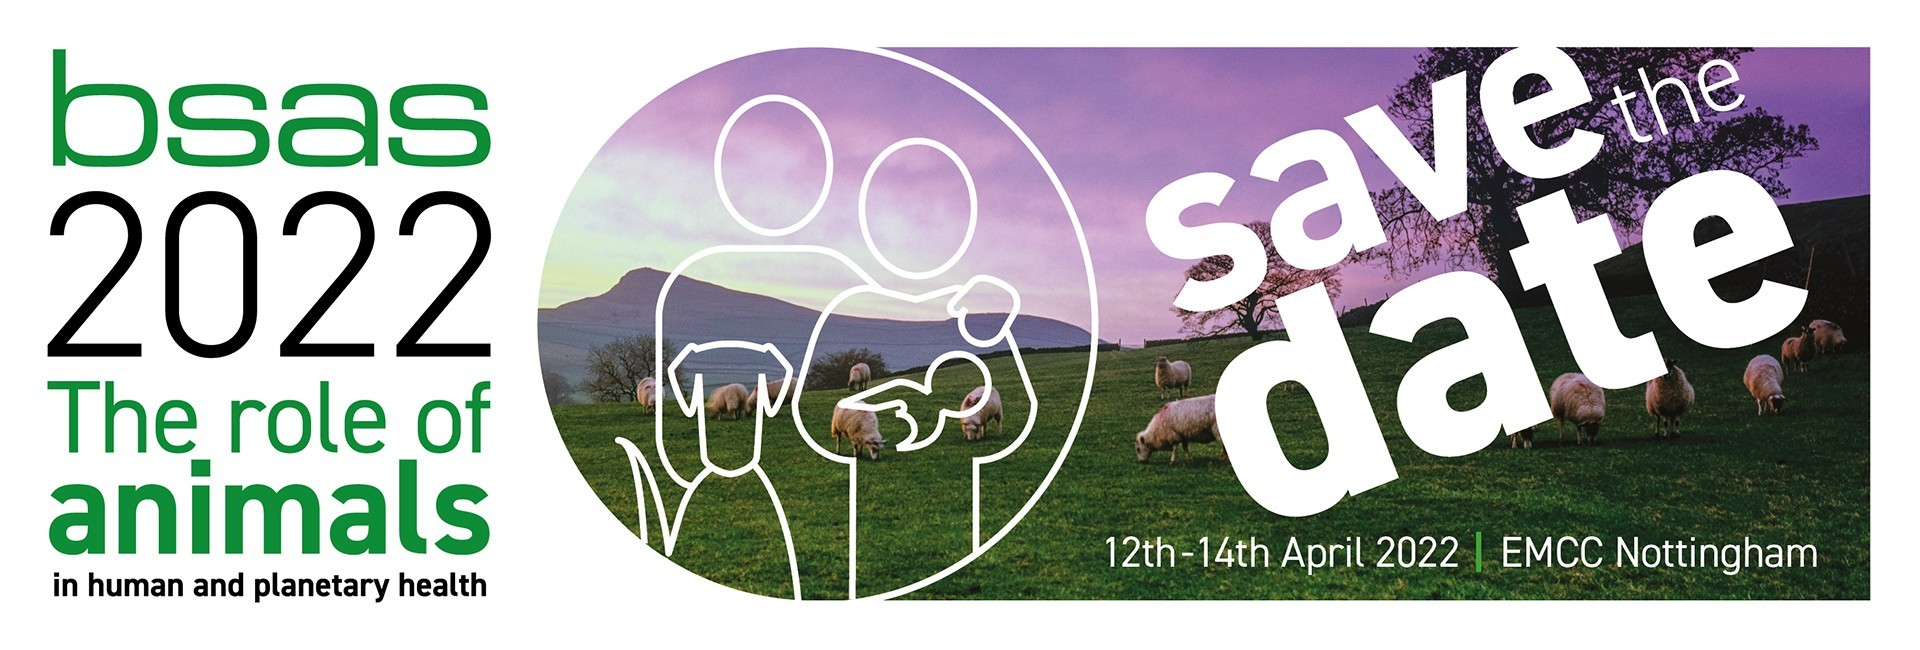 BSAS Annual Conference. Save the date: 12th - 14th April 2022